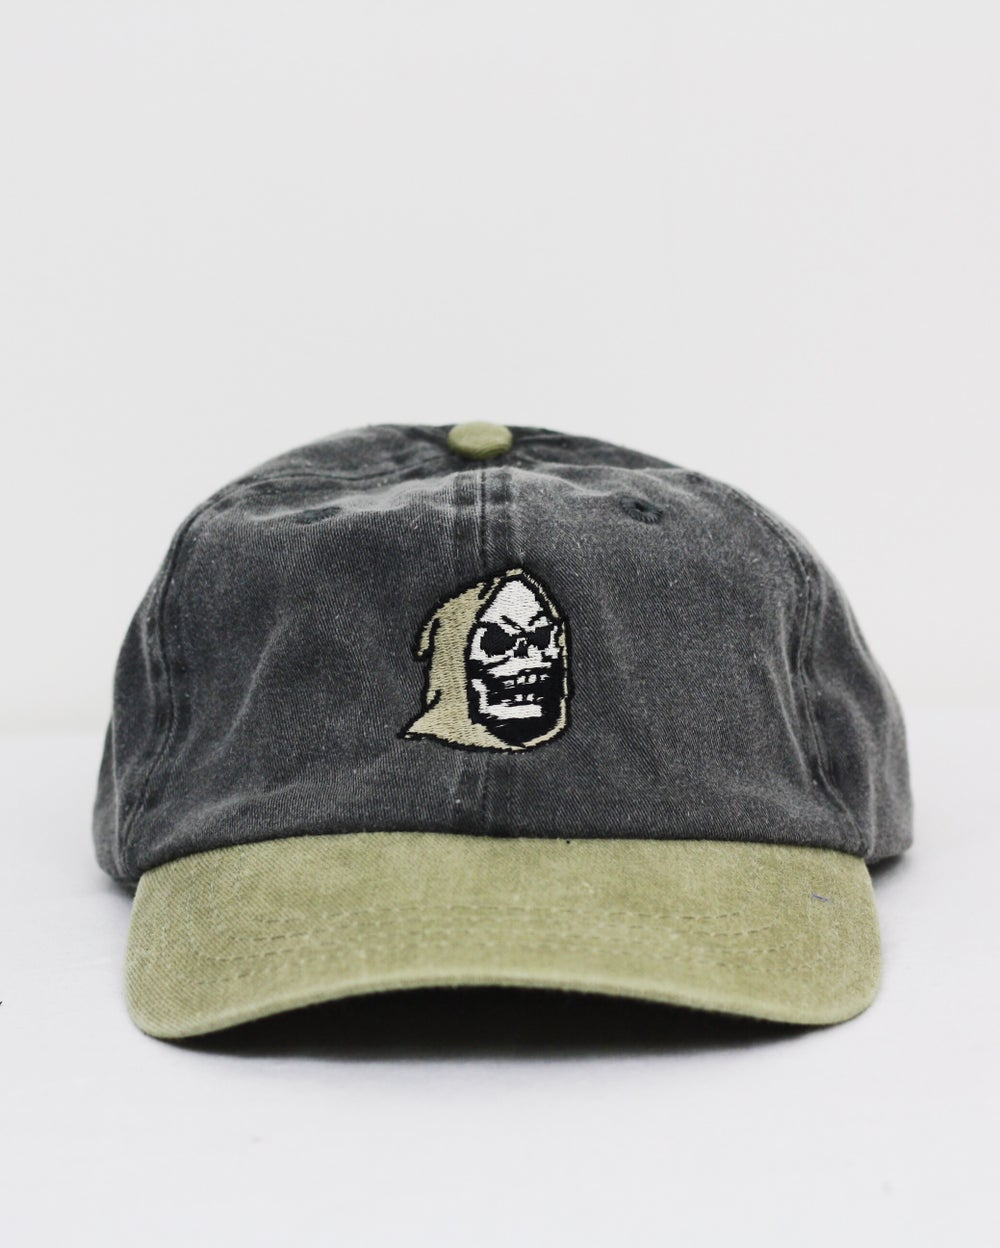 Image of Skele-tor cap - tan/charcoal grey